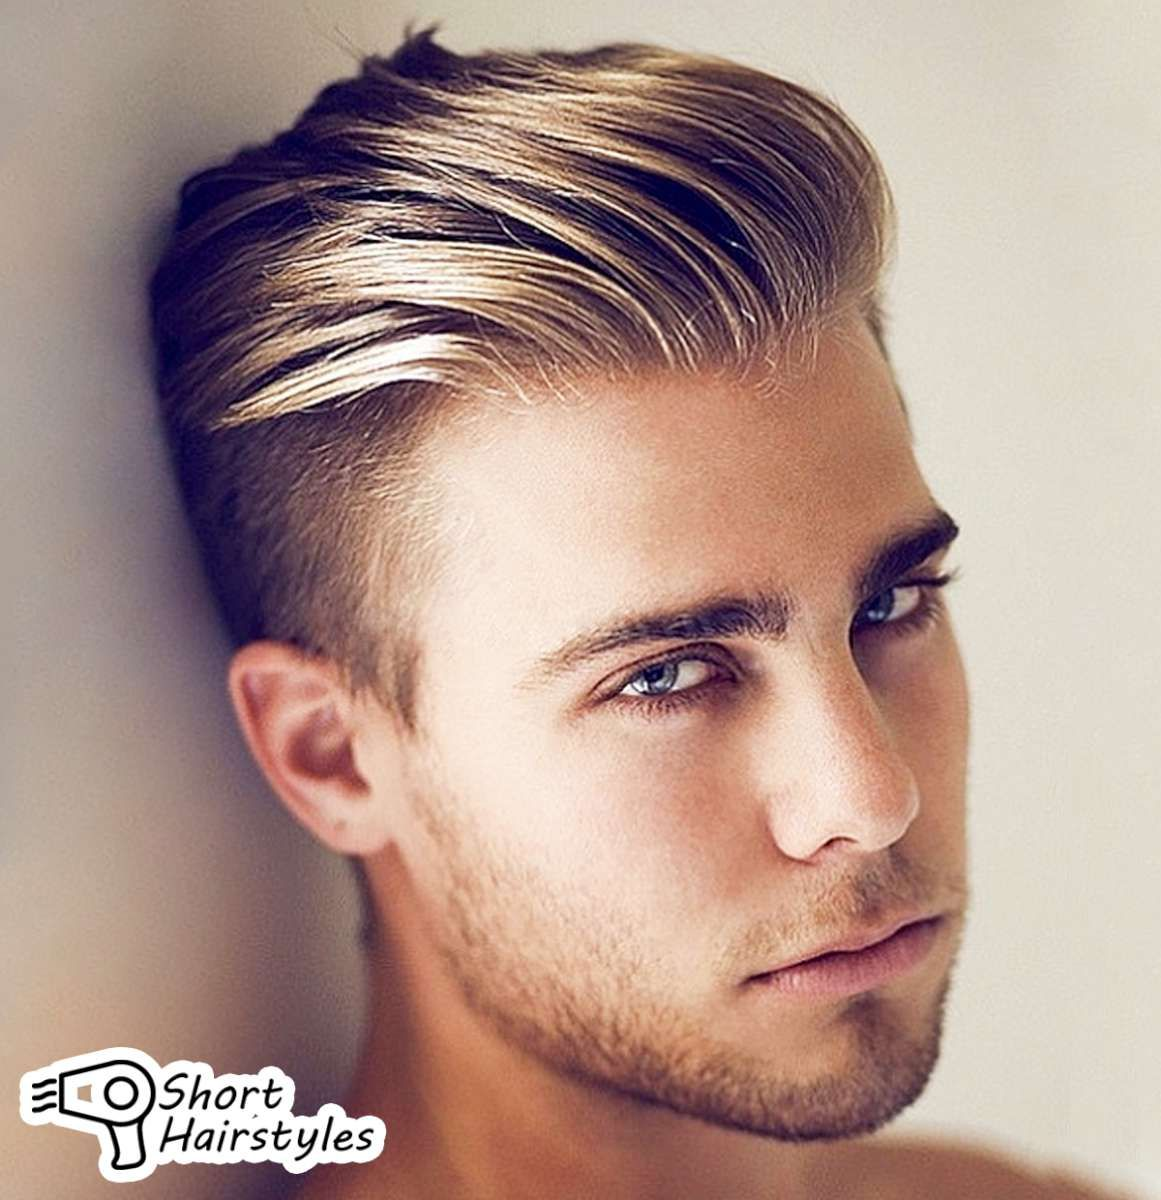 Undercut Men Hairstyle Enchanting Fashionzwomen Wants To Discuss The Latest Hairstyles For Men That